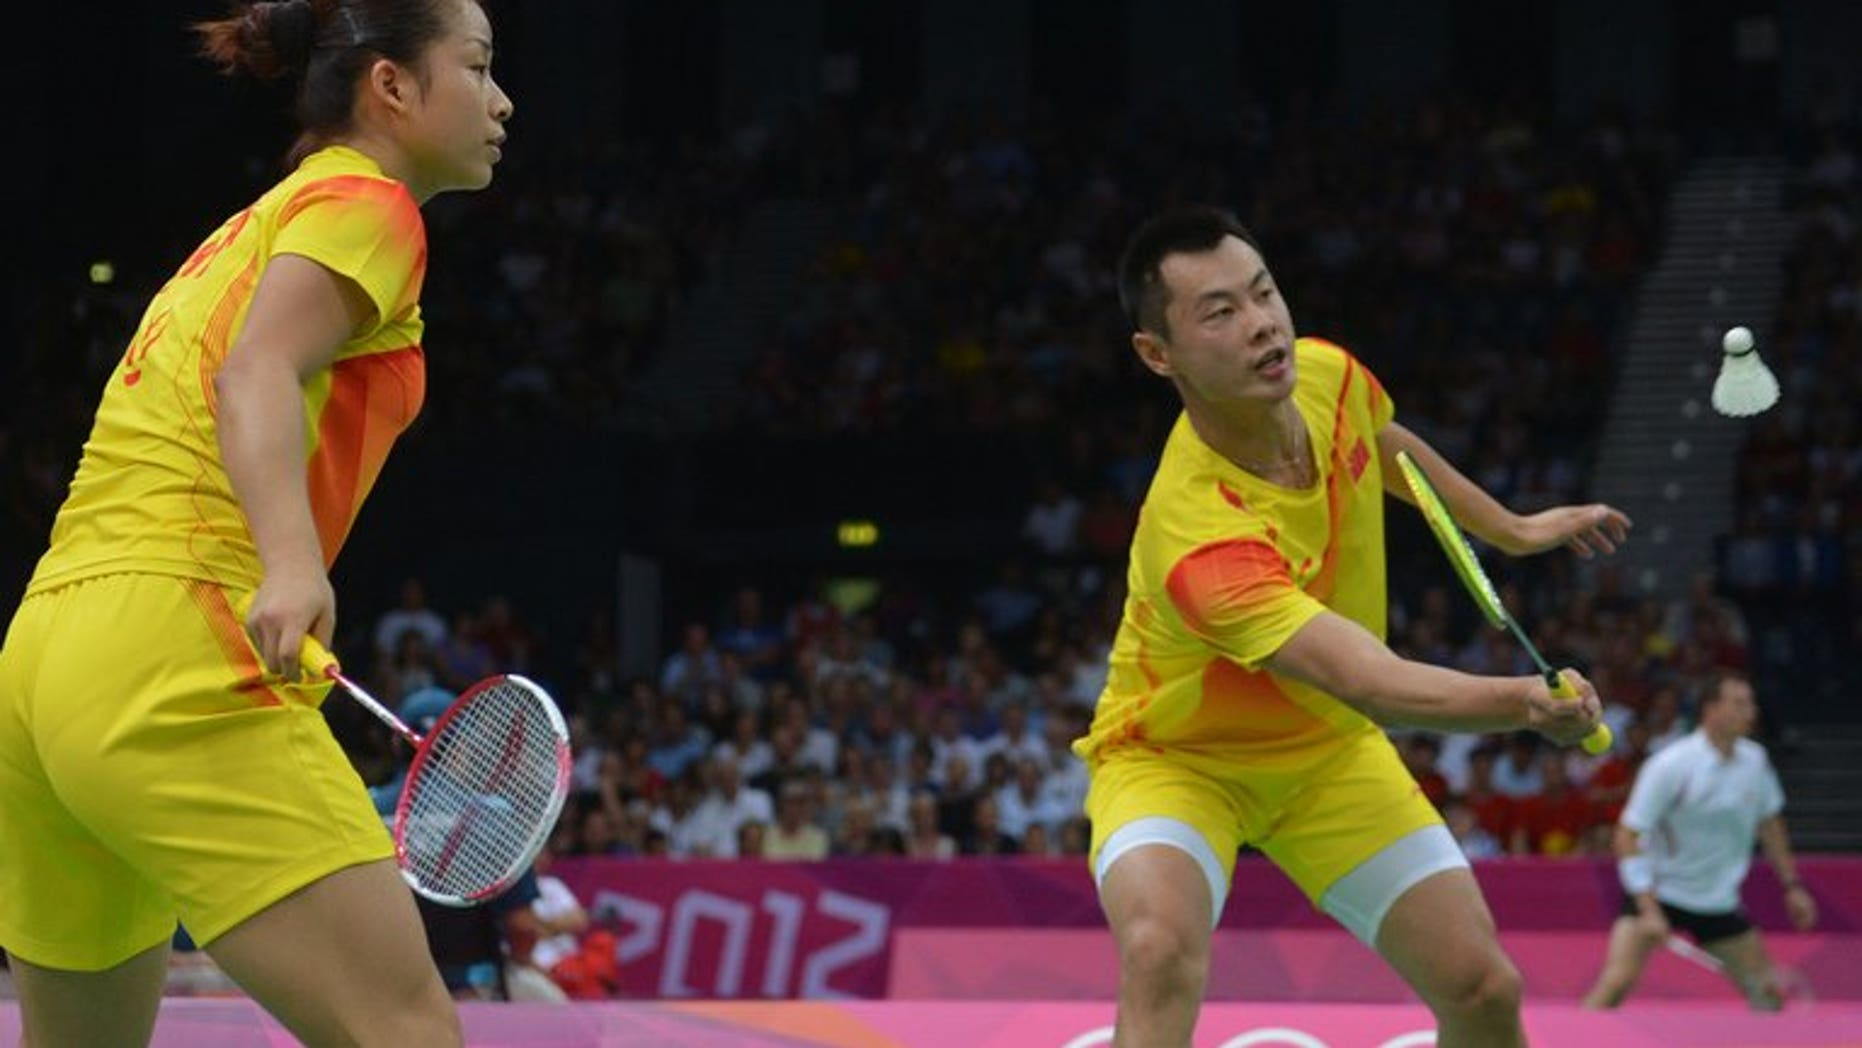 China's Ma Jin (left) watches as Xu Chen returns a shuttlecock as they compete in the mixed doubles badminton event at the 2012 Olympic Games in London, on July 30, 2012. The world's top ranked mixed doubles pair were given a scare in their opening match at the badminton world championships after dropping the first game in an intense clash.